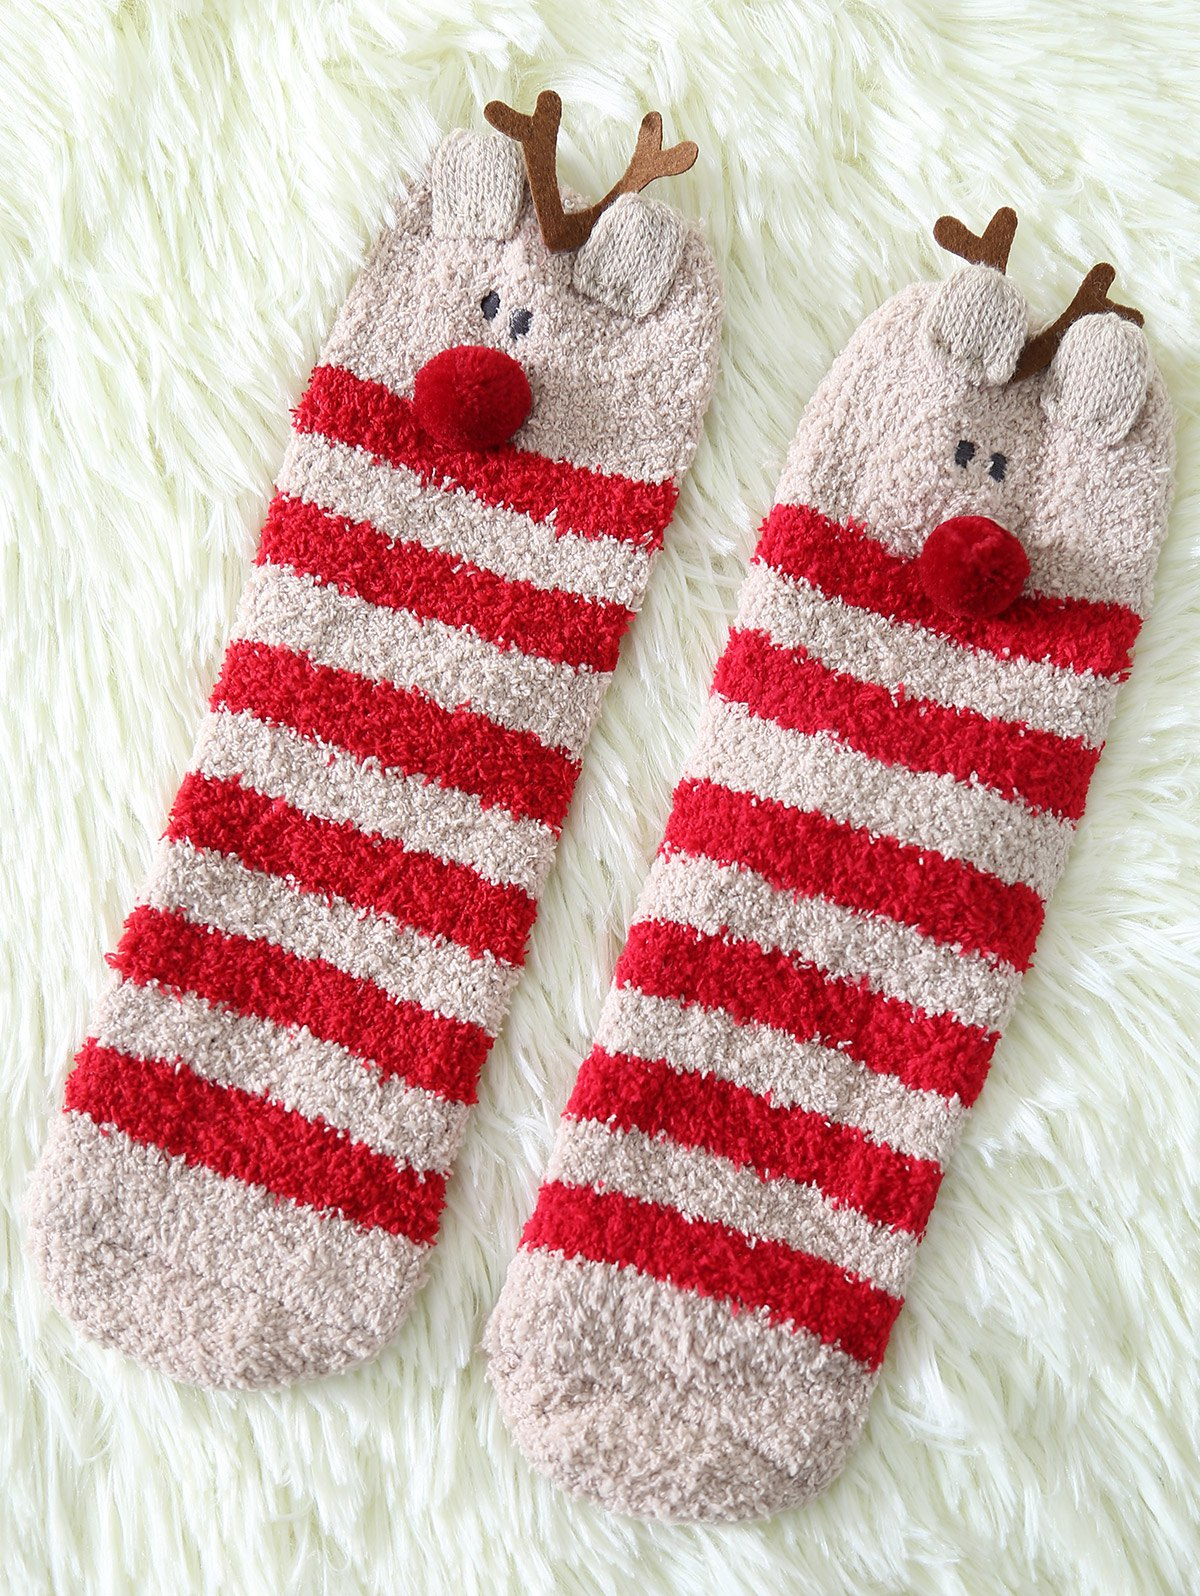 Coral Fleece Cartoon Deer Socks